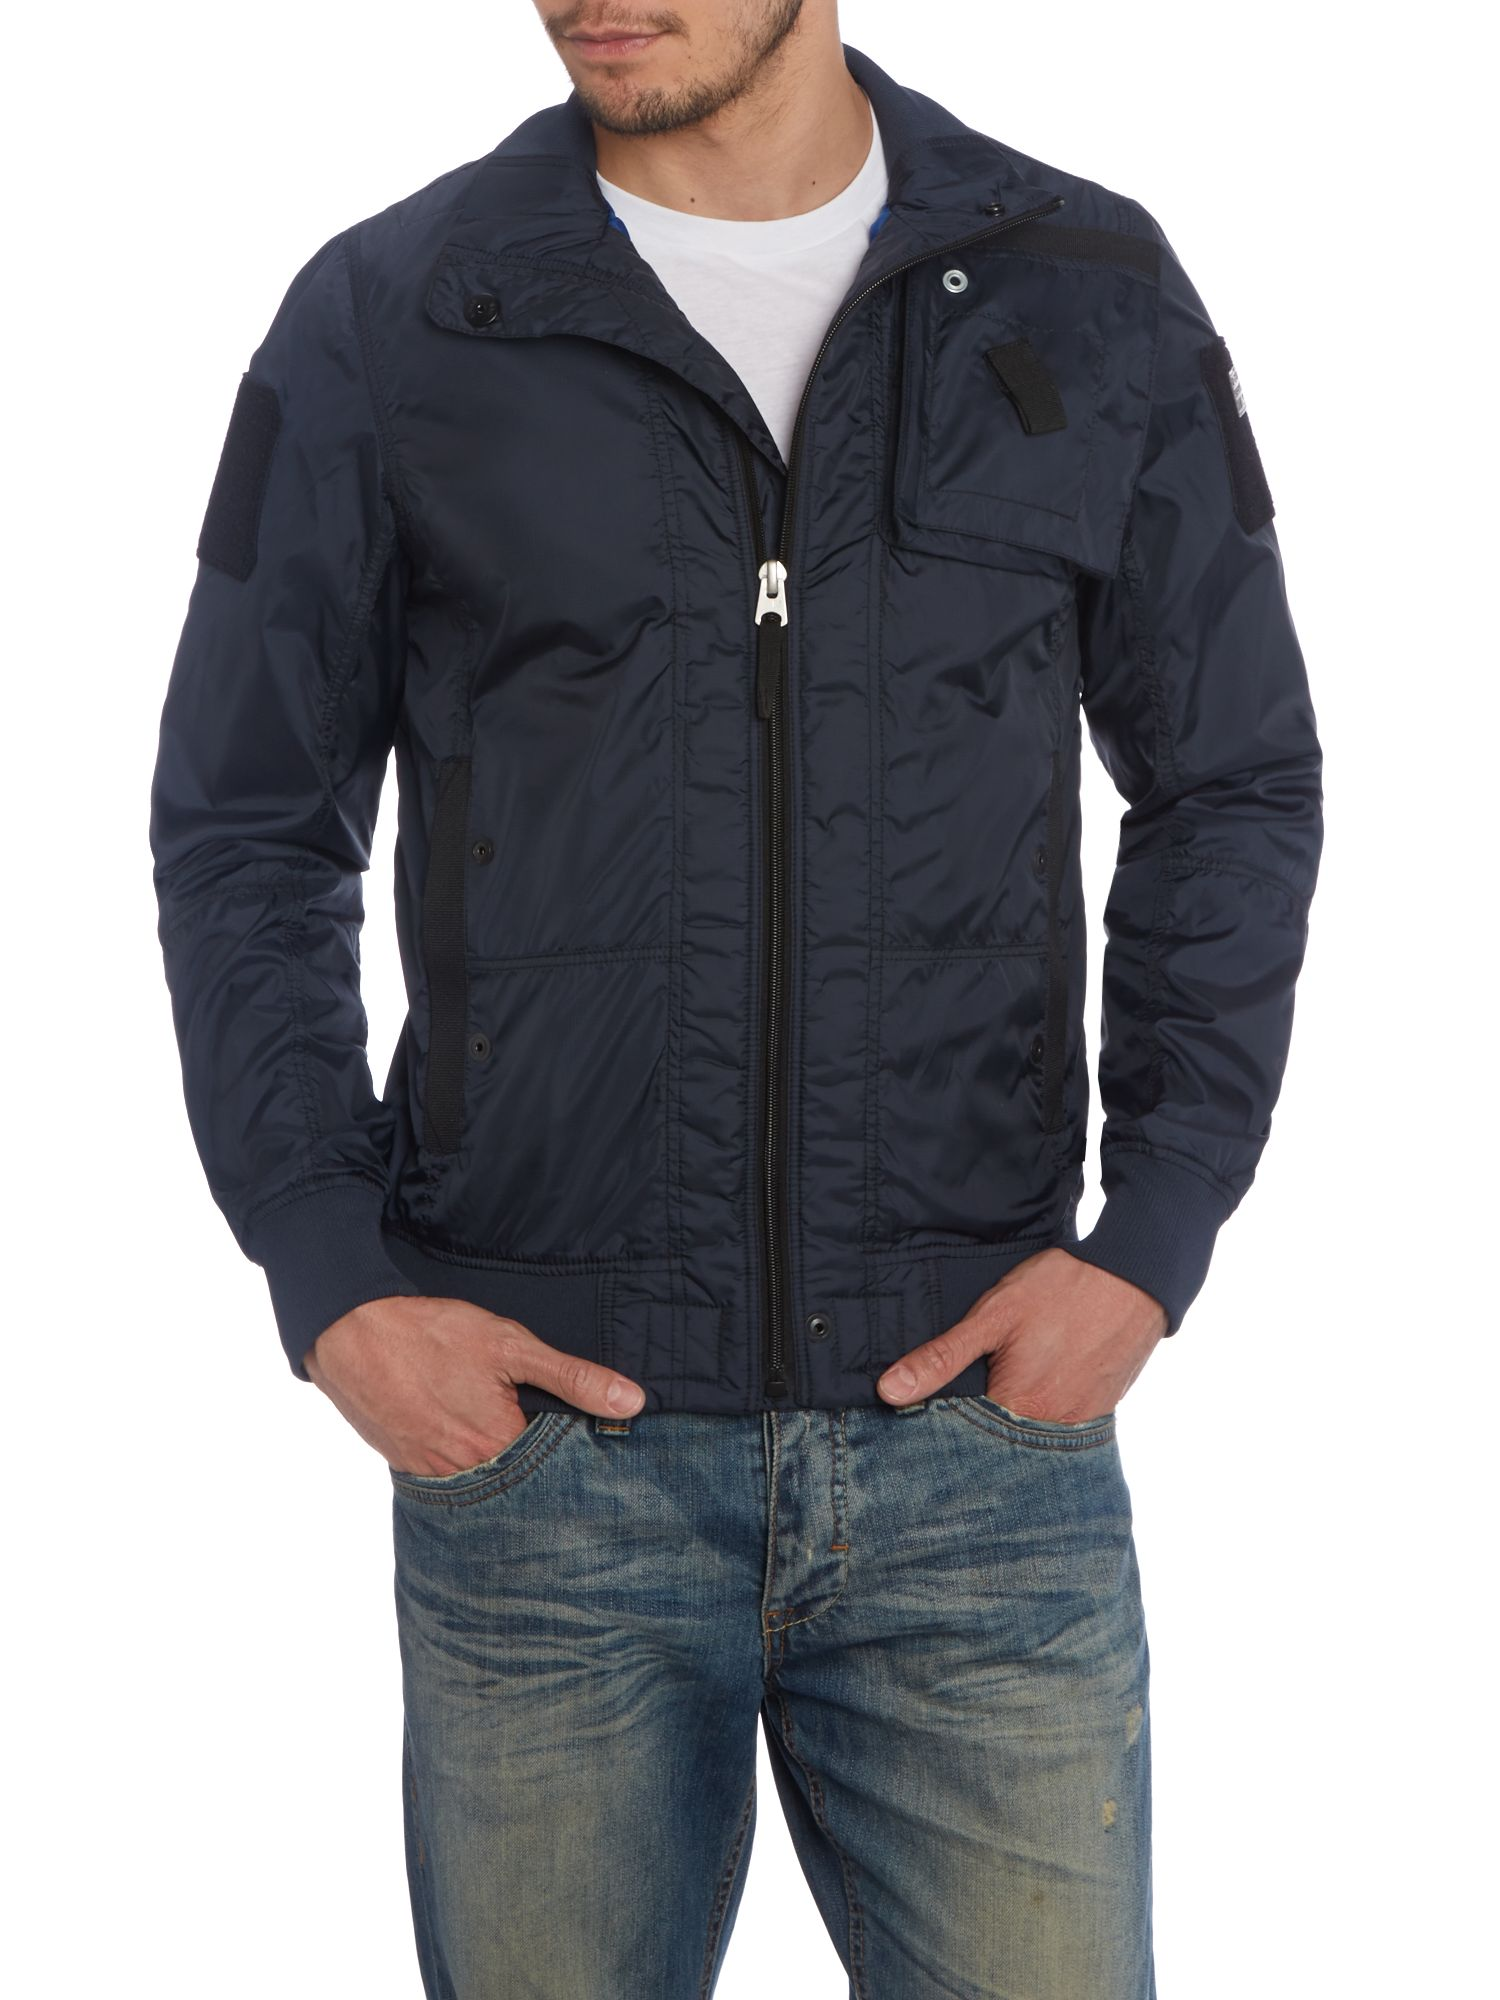 Three pocket bomber jacket